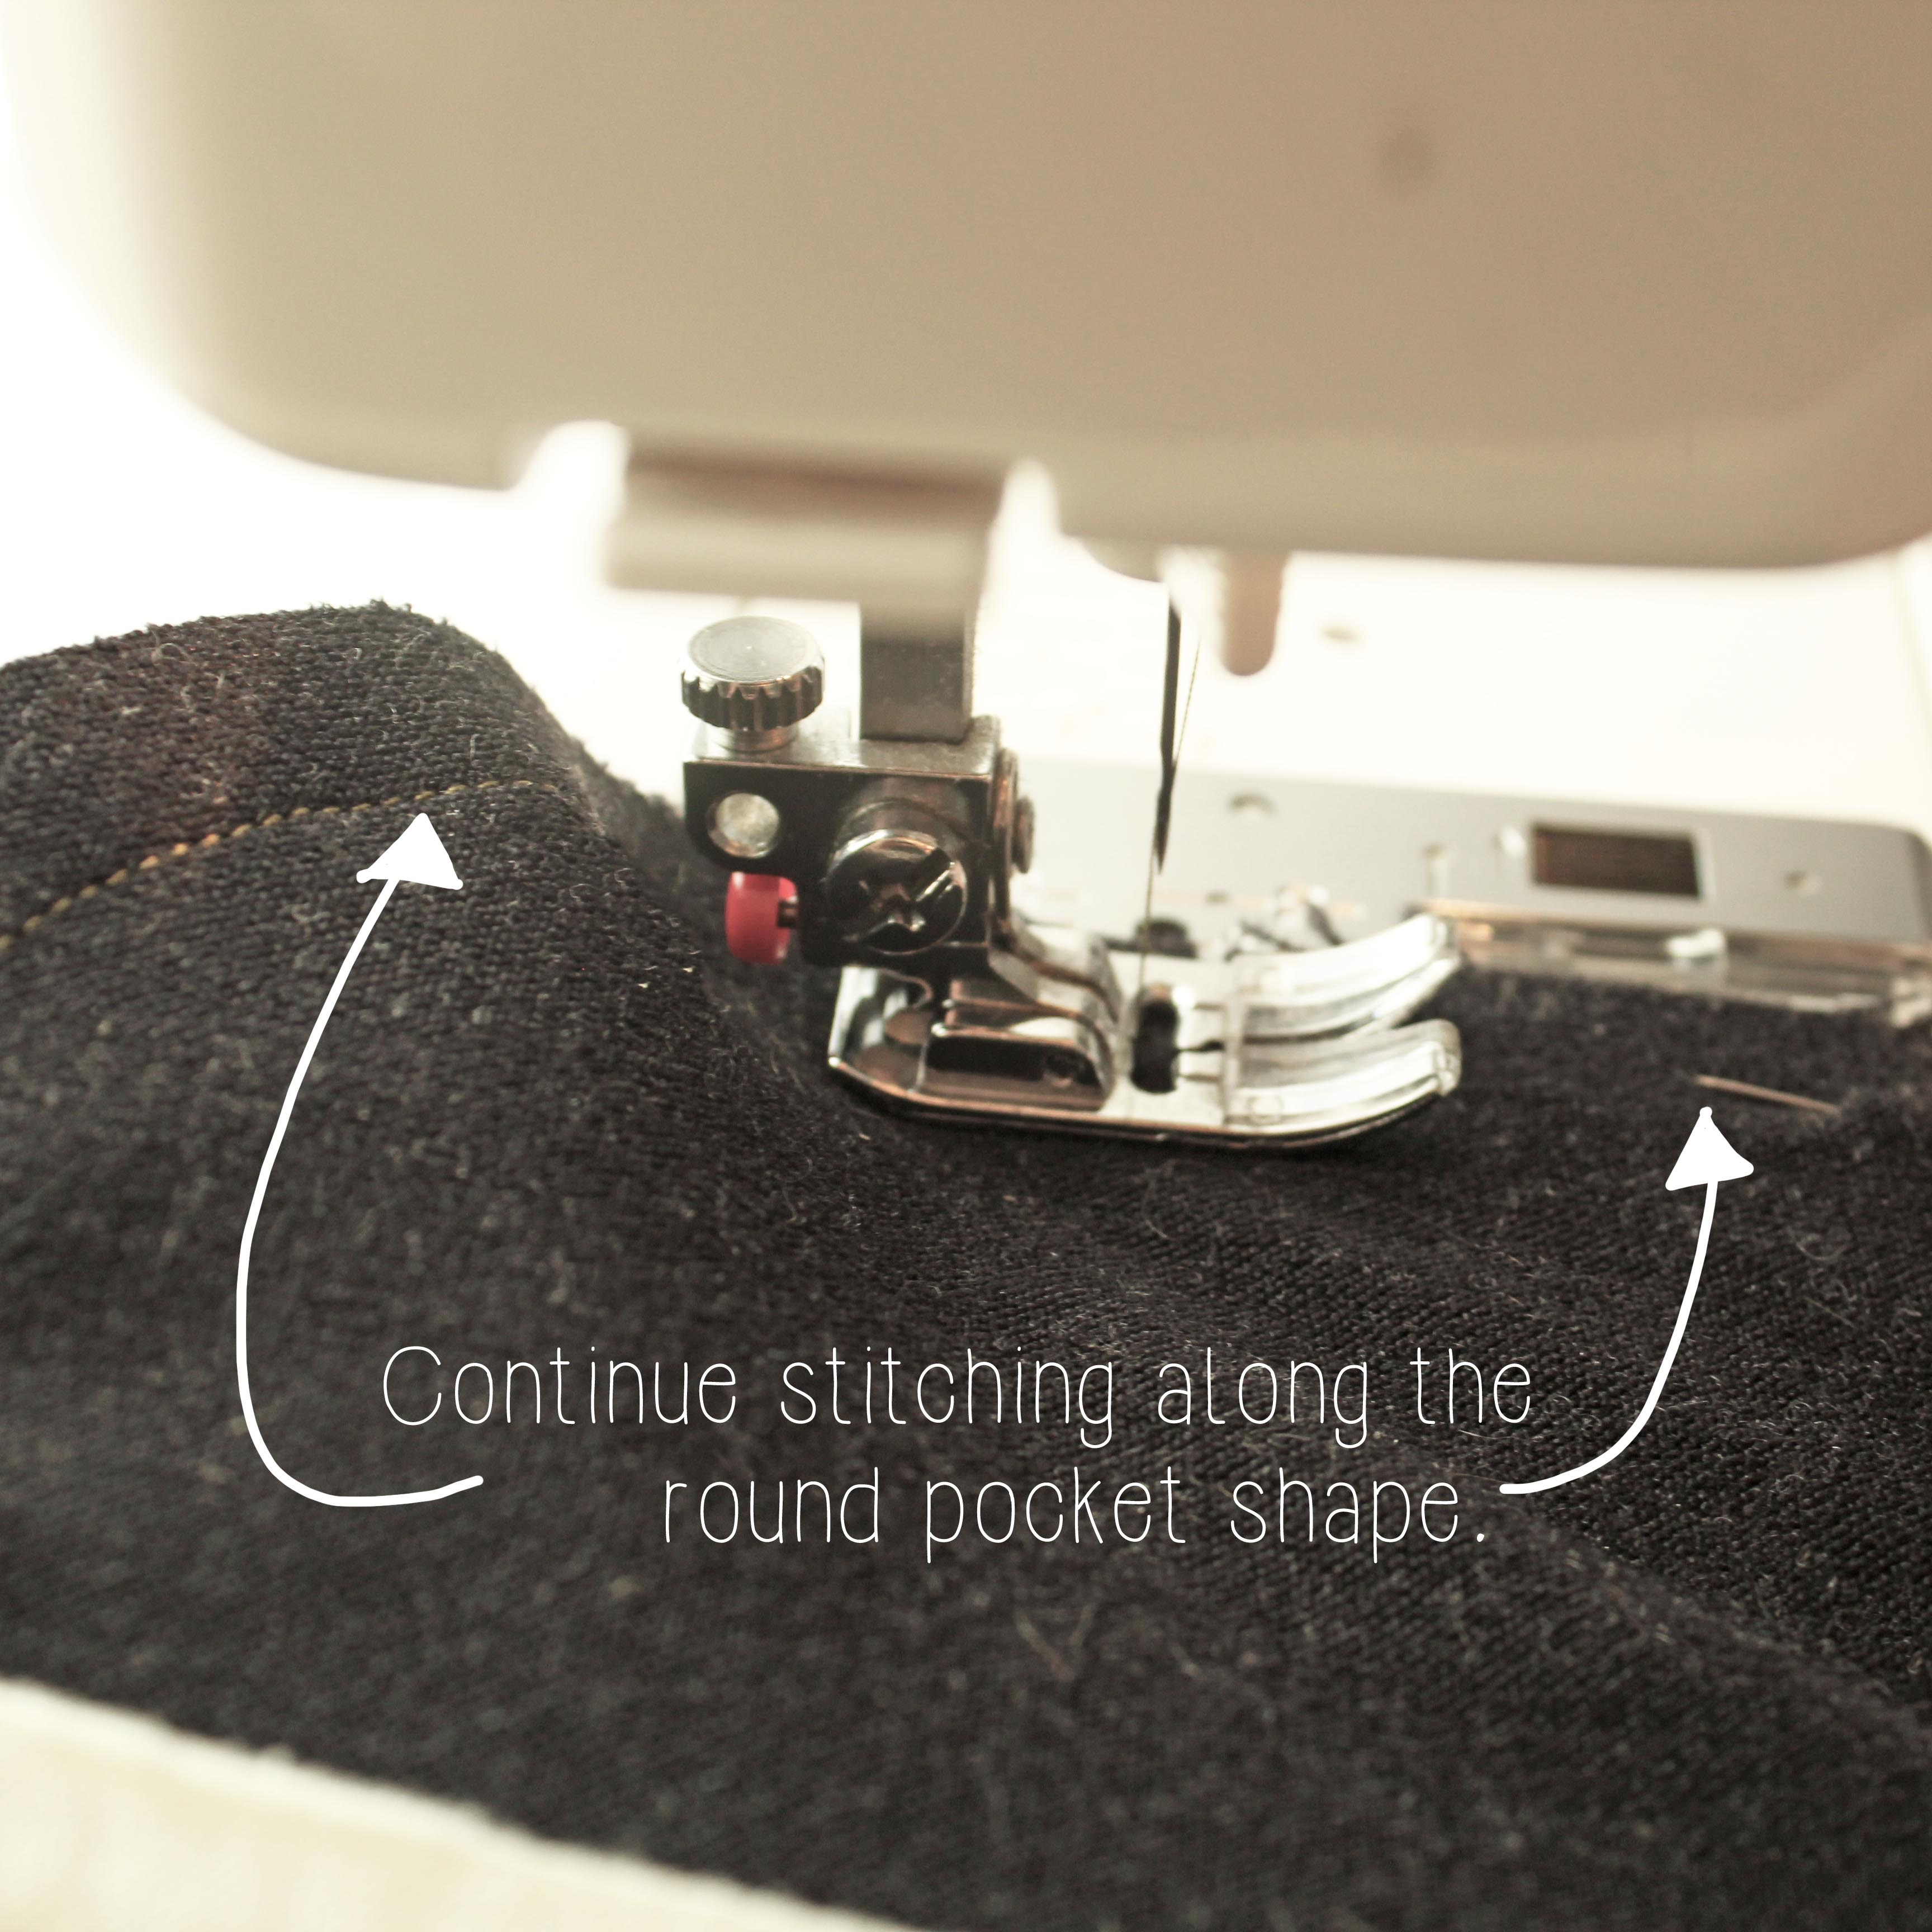 The Ashby Coat Sewing Tutorial Garment Construction Sewing Technique Step 6.2 Pocket Sewing